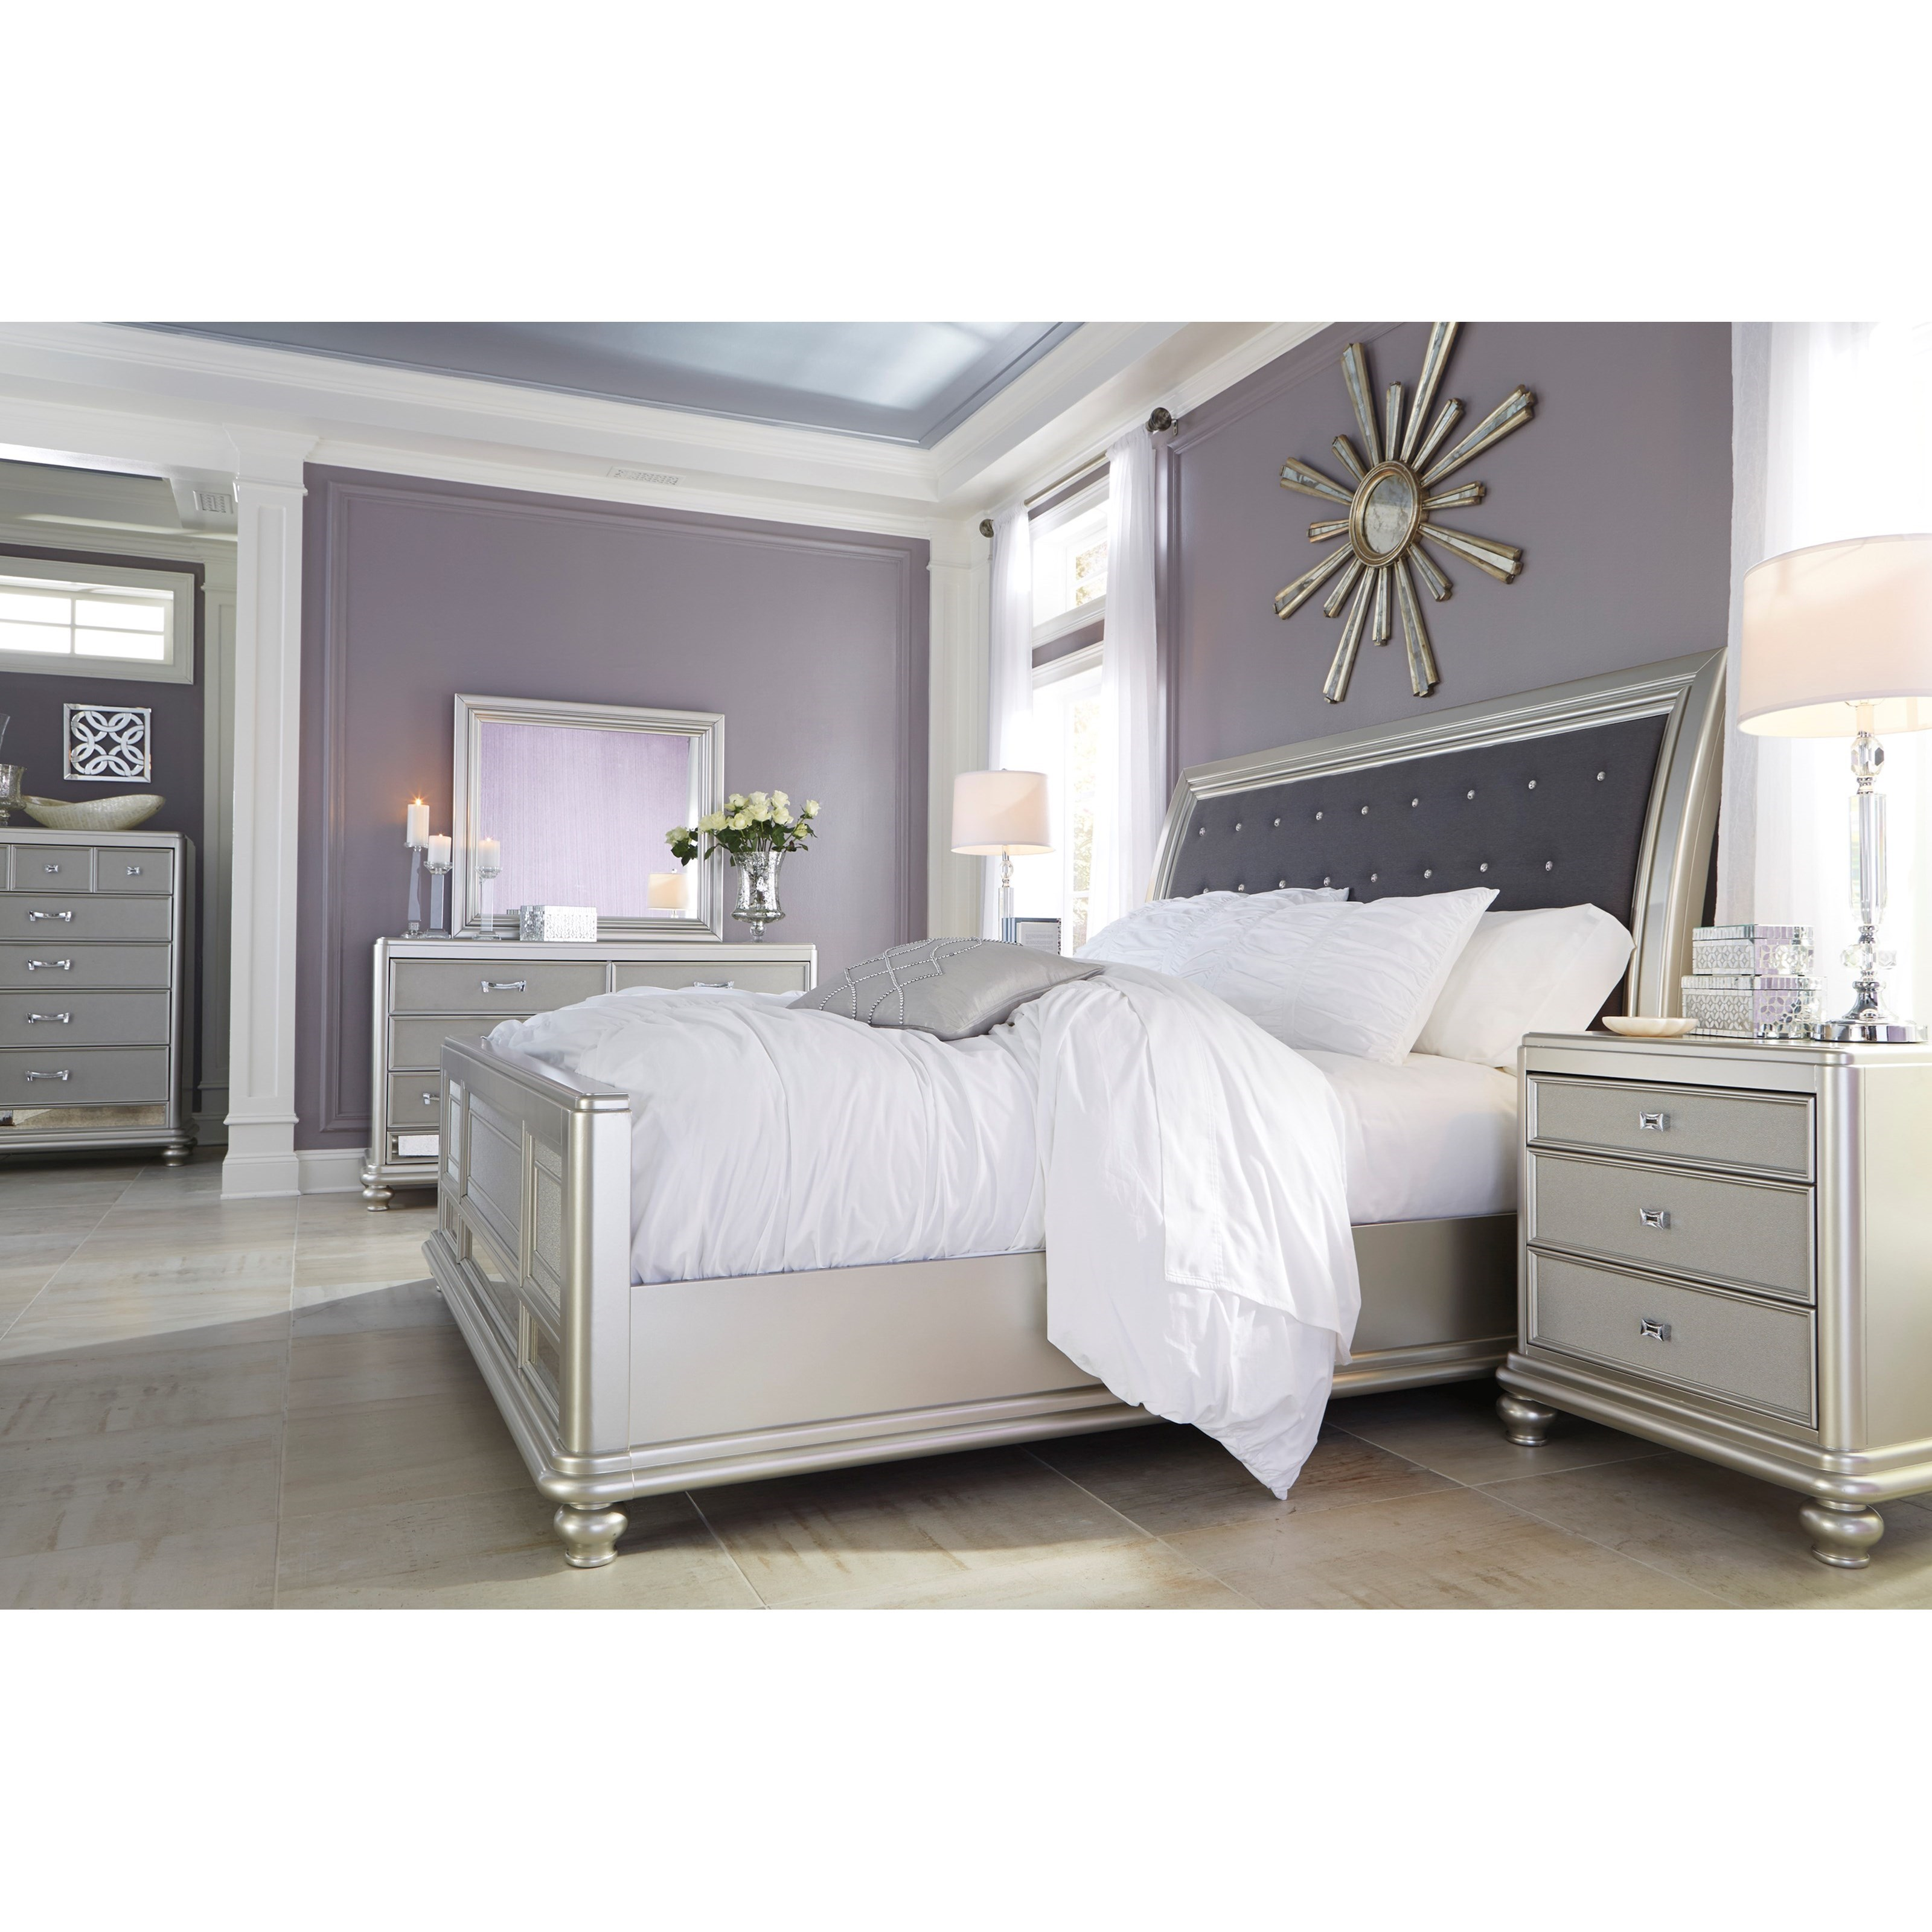 Signature Design By Ashley Coralayne California King Bed With Upholstered Sleigh Headboard And